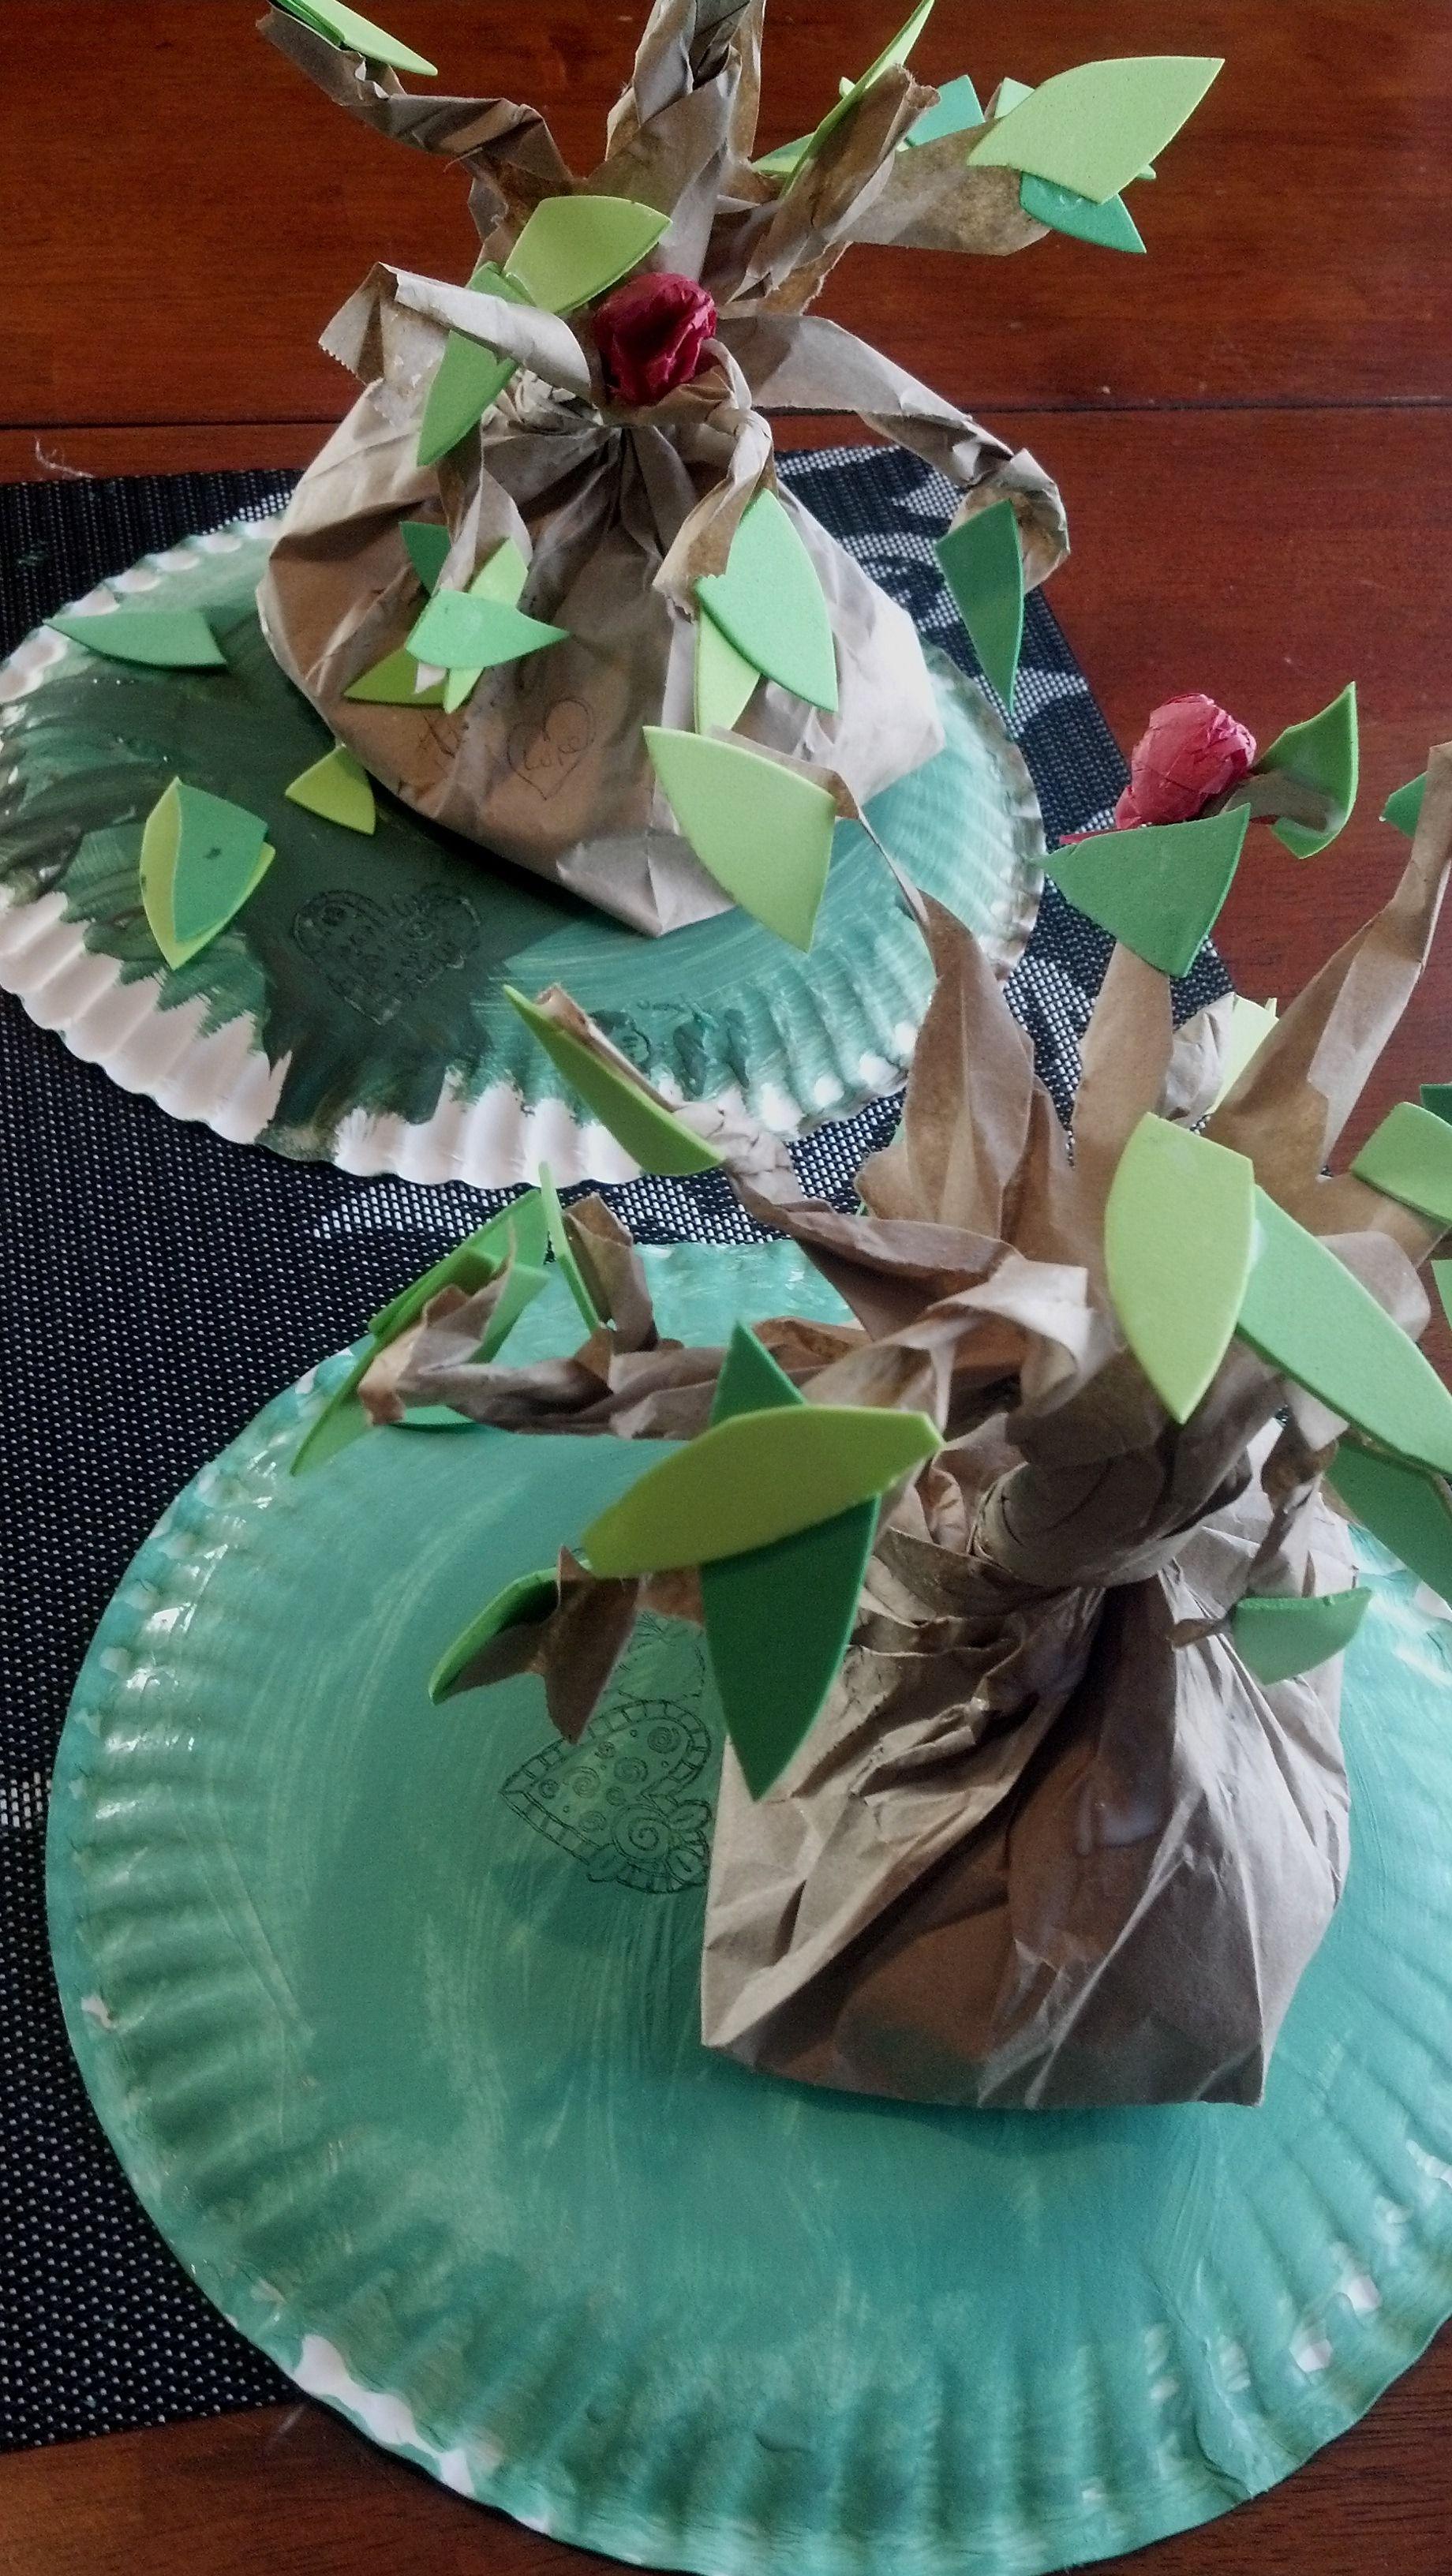 Plants arts and crafts - The Giving Tree Activities Useful Plants Plants We Eat